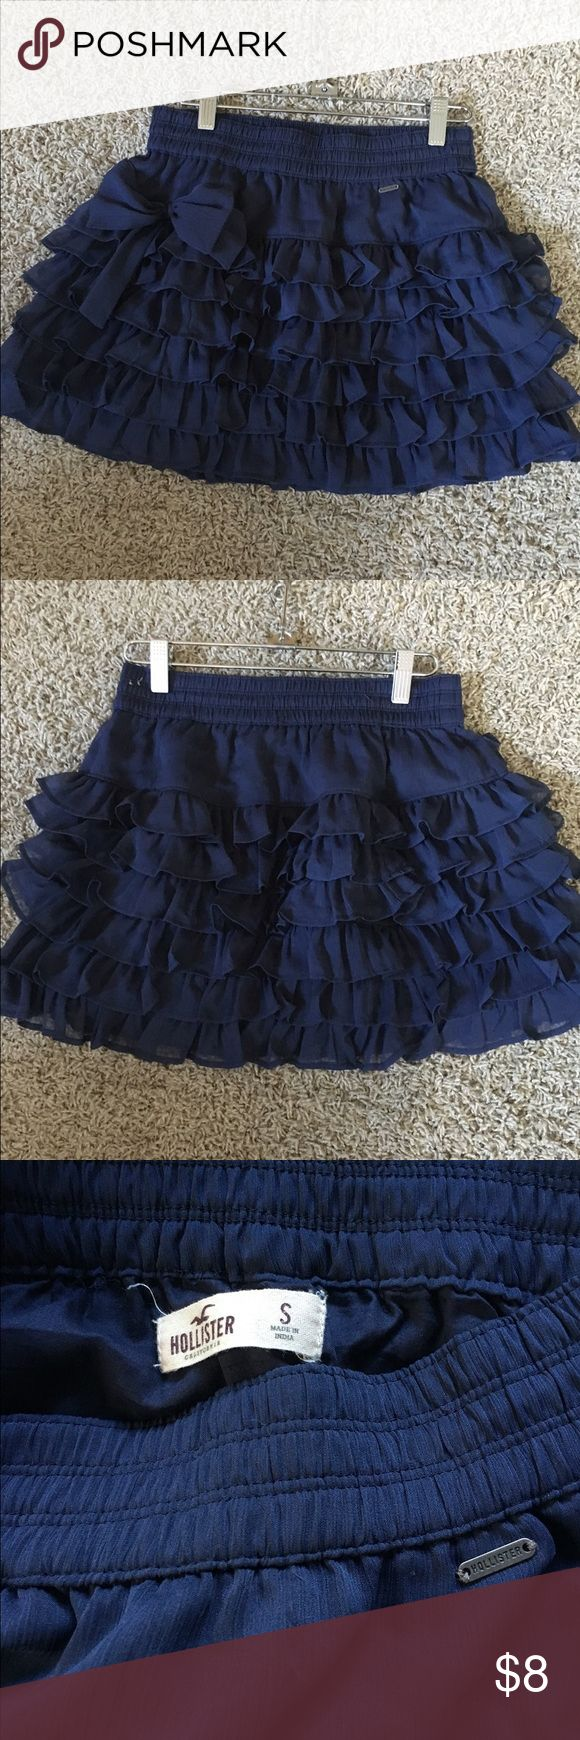 Hollister skirt Navy colored ruffle layer skirt from Hollister. Cute bow on the right side. This skirt is relatively short. Hollister Skirts Mini